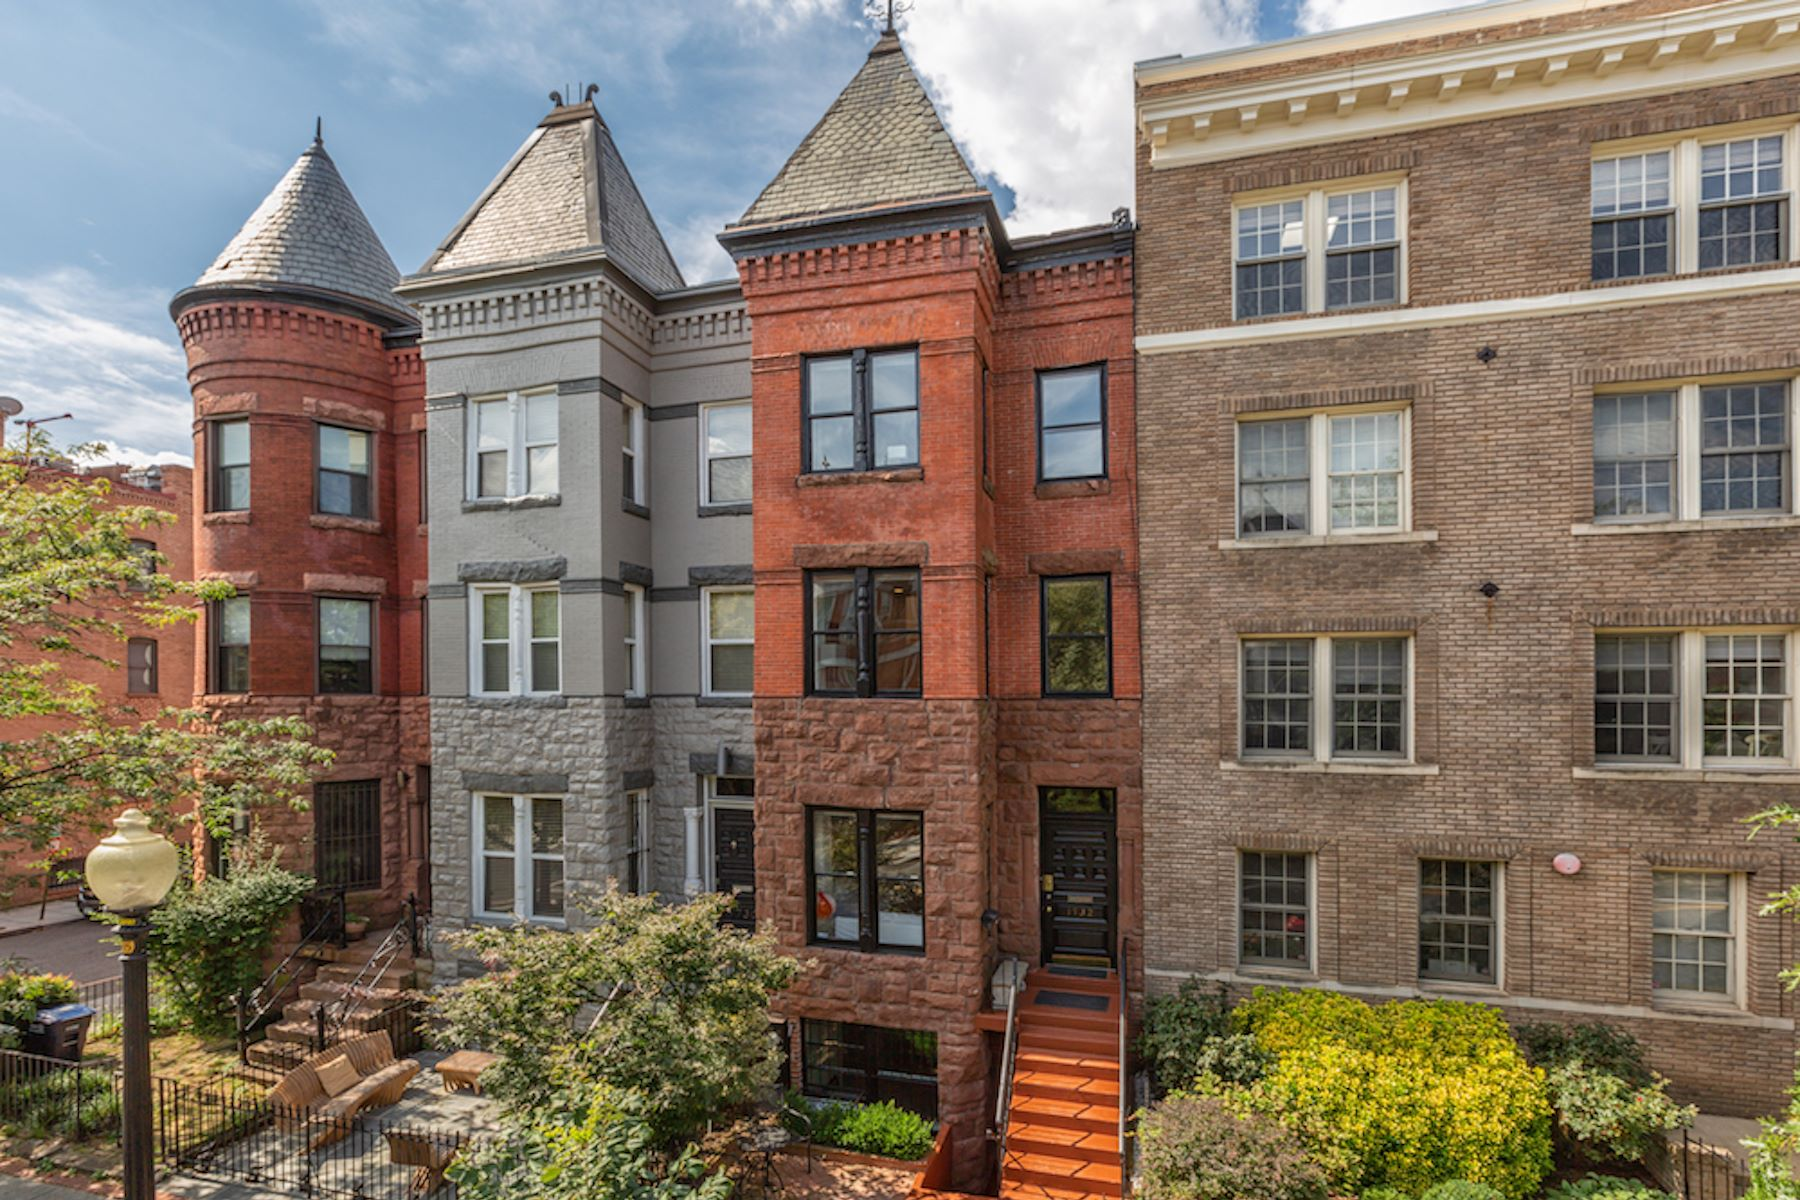 Townhouse for Sale at 1732 18th Street, NW 1732 18th Street, NW Washington, District Of Columbia 20009 United States